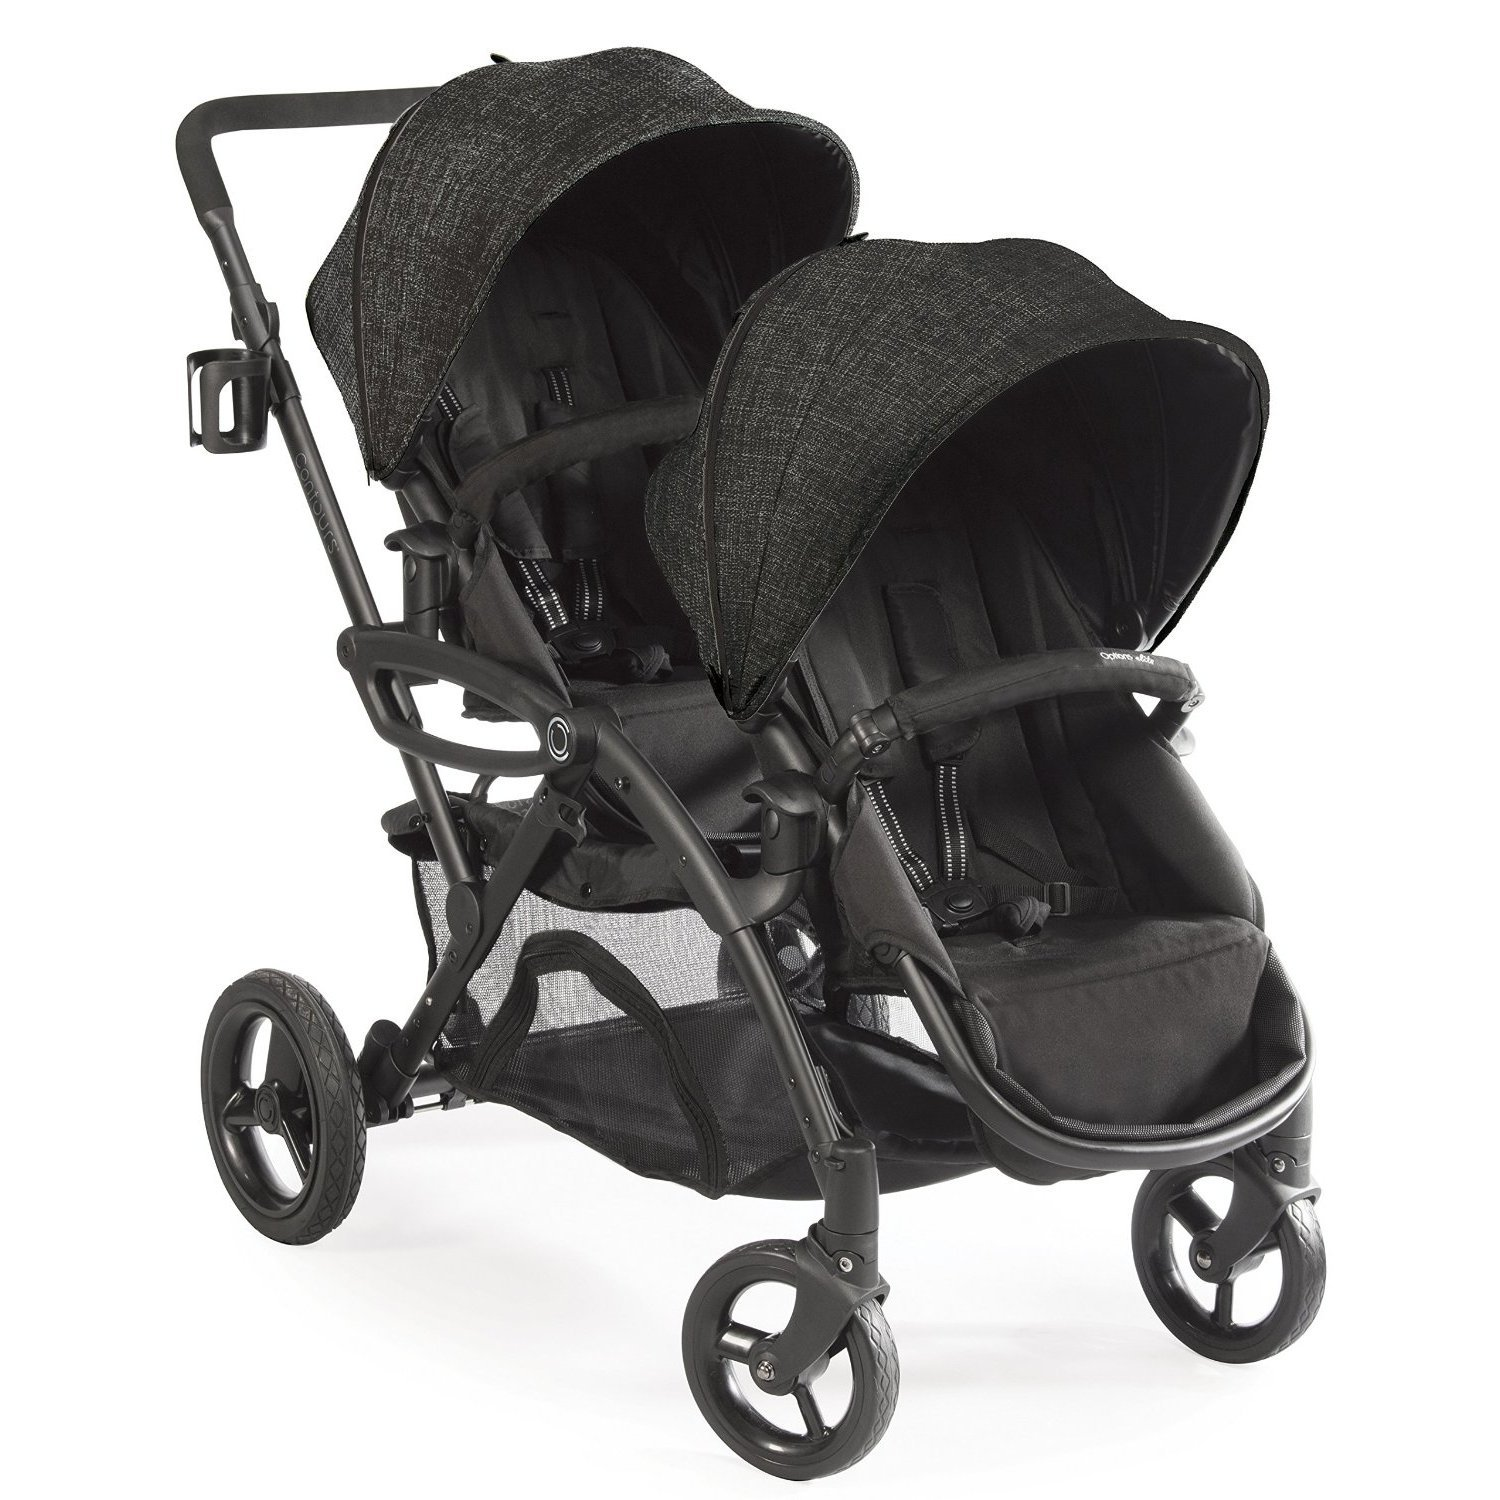 Kolcraft Contours Options Elite Tandem Stroller Carbon by Kolcraft